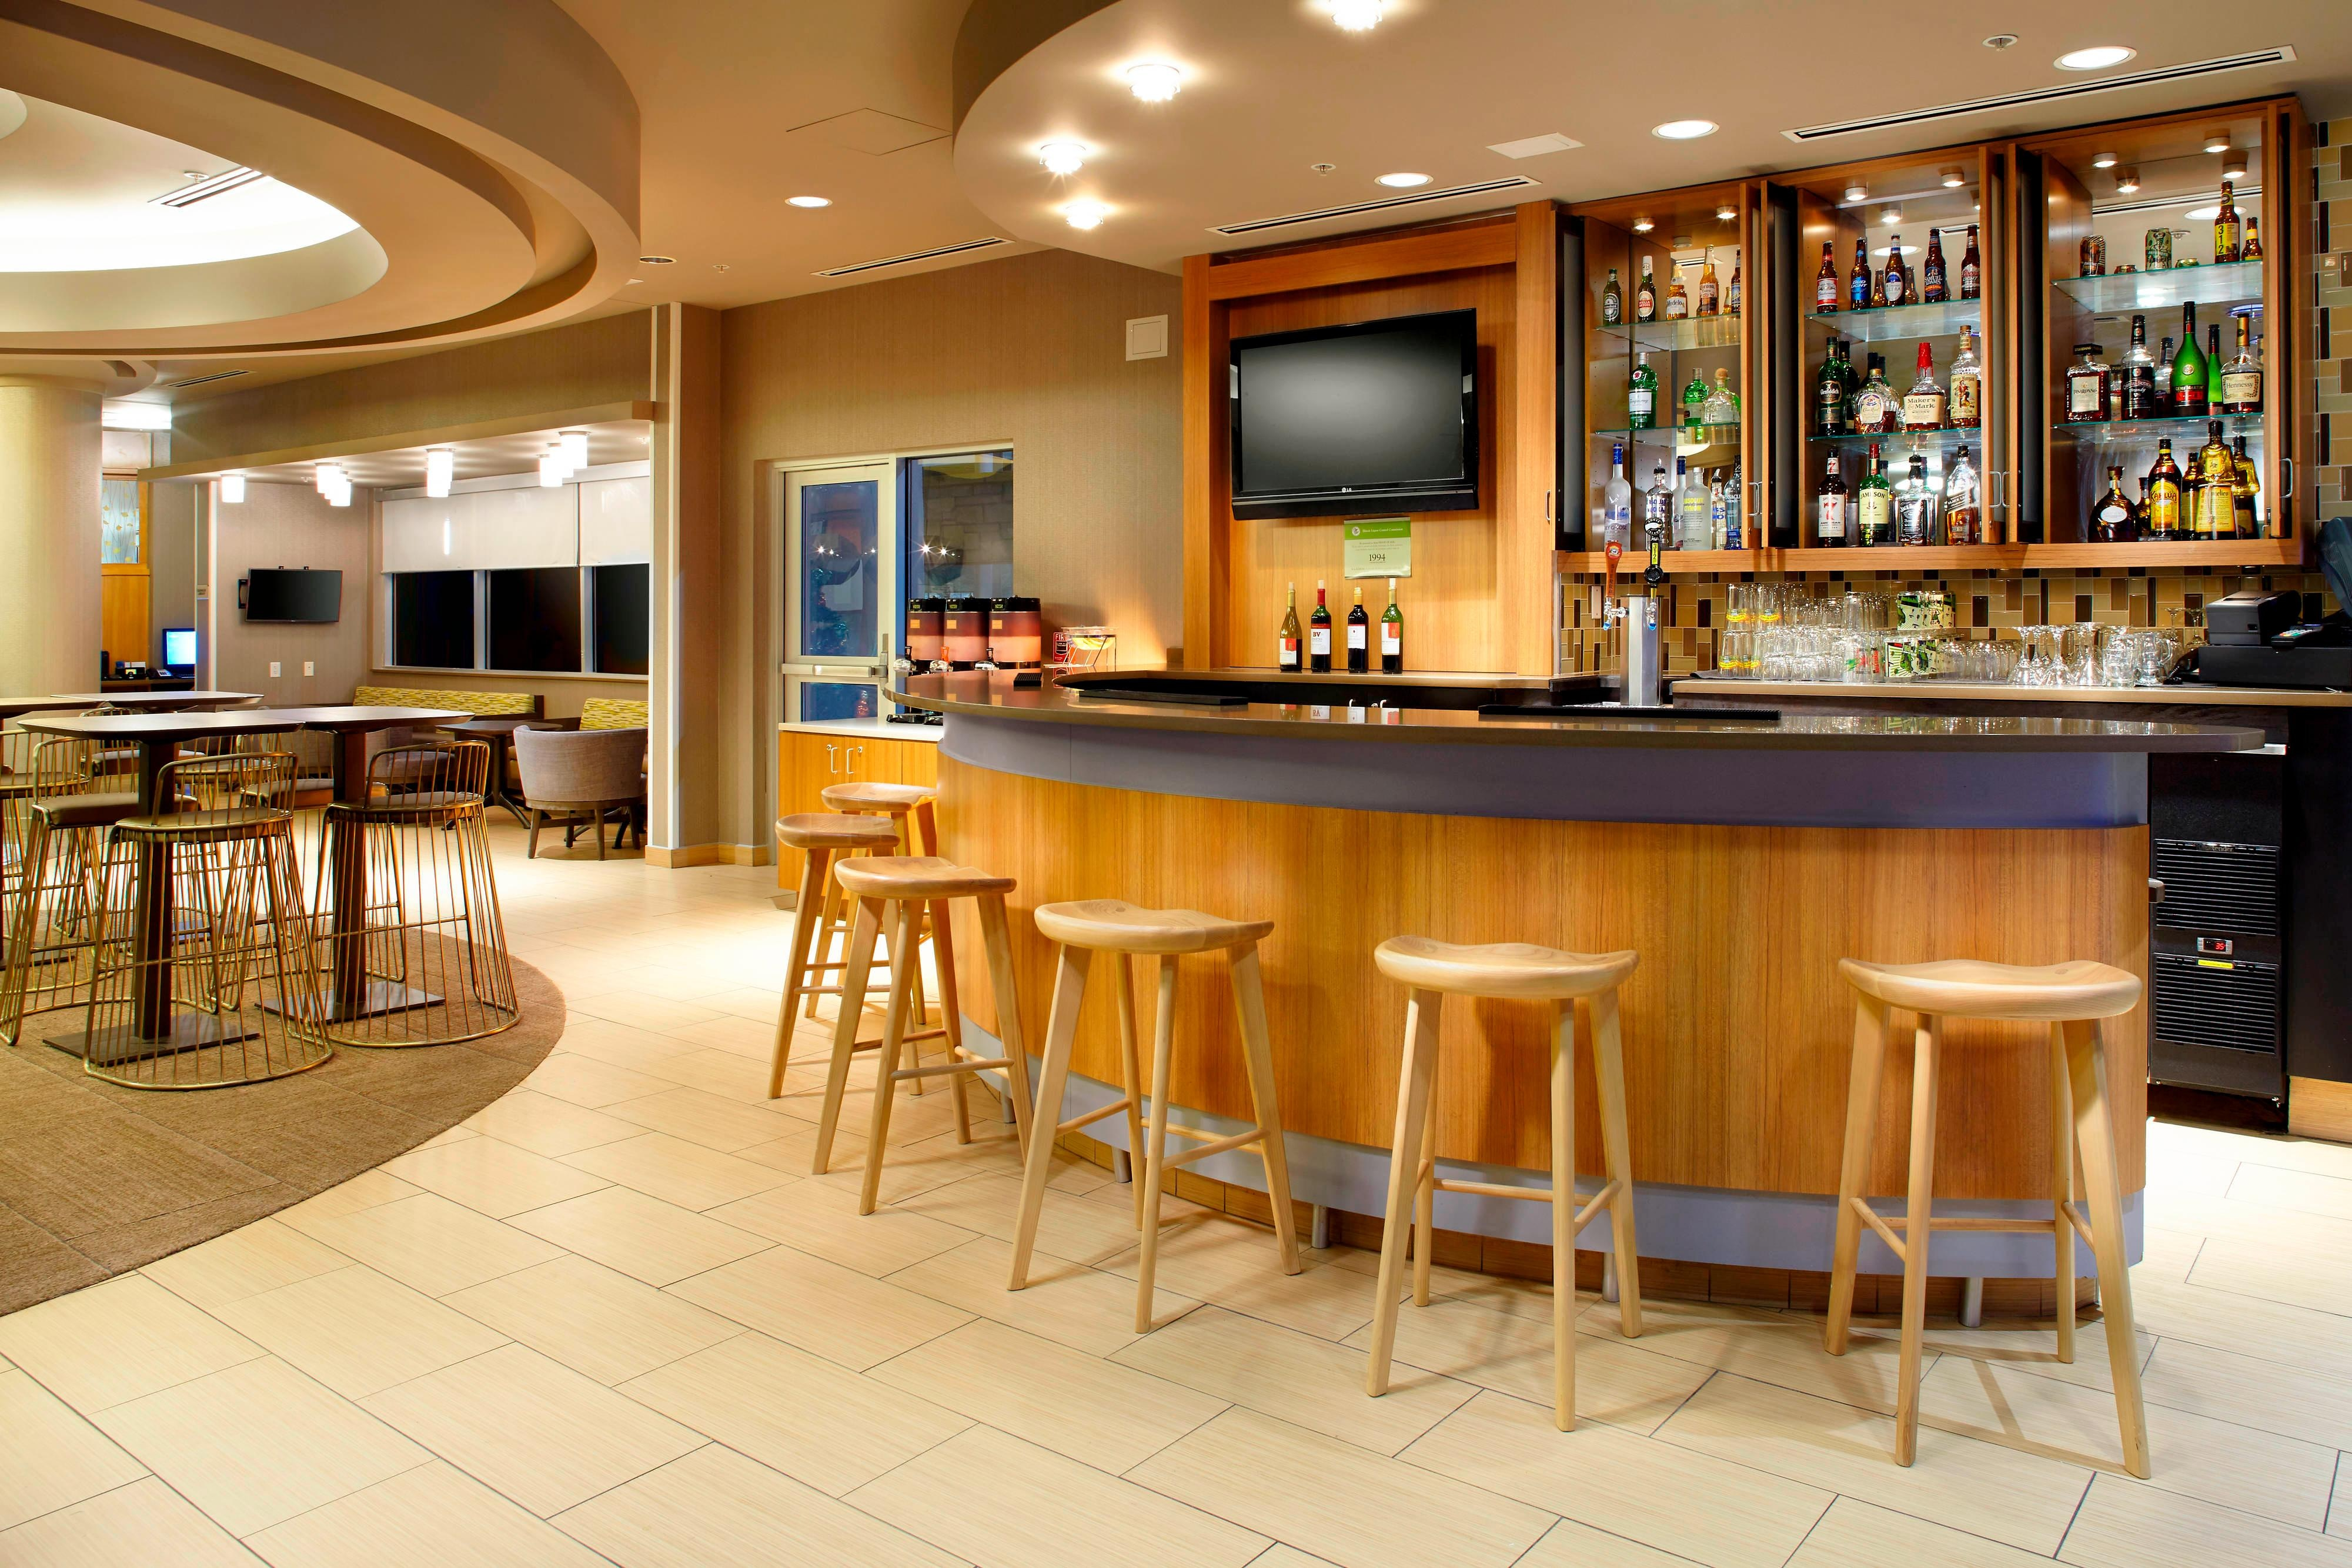 Springhill-Suites-Waukegan-Hotel-Cocktail-Lounge